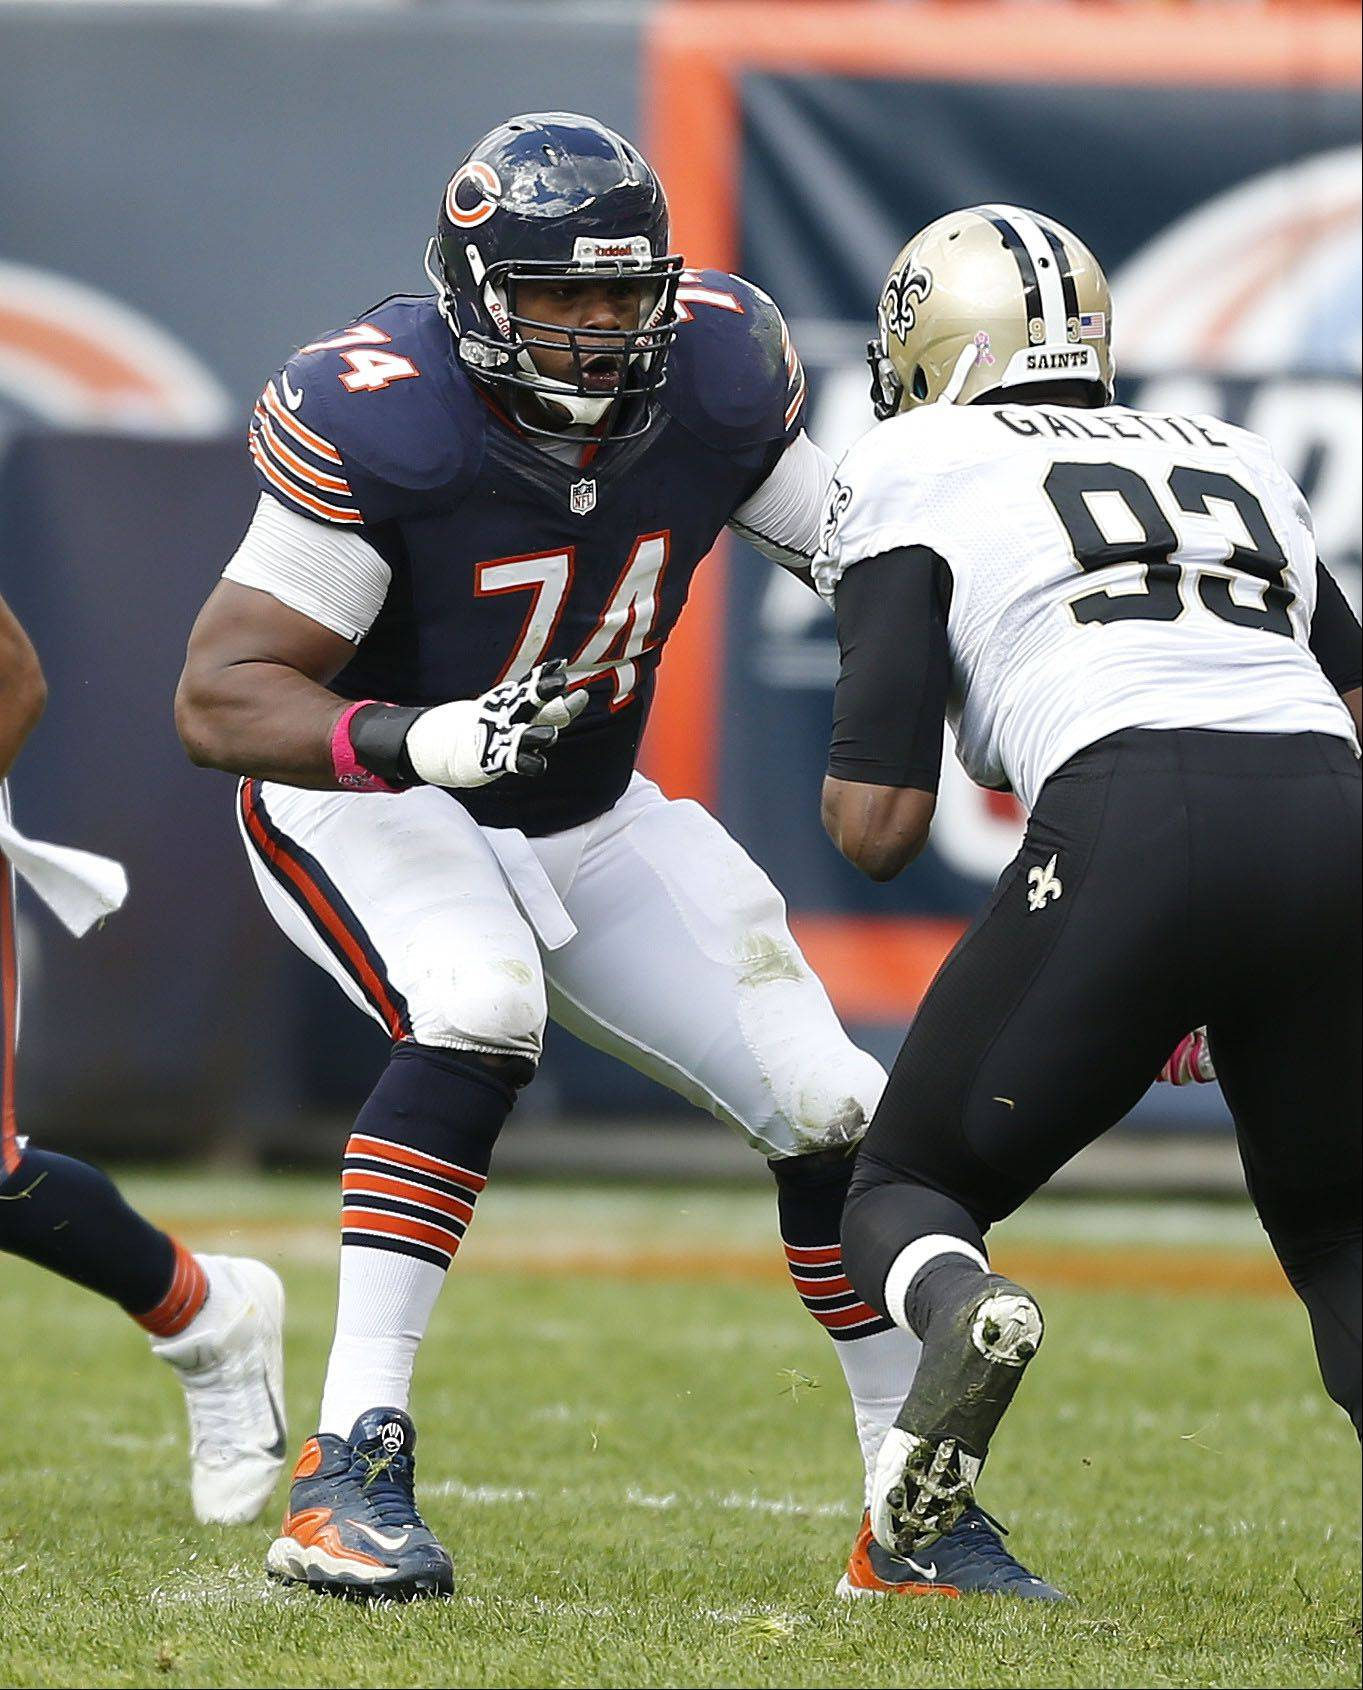 Chicago Bears tackle Jermon Bushrod blocks New Orleans Saints outside linebacker Junior Galette.